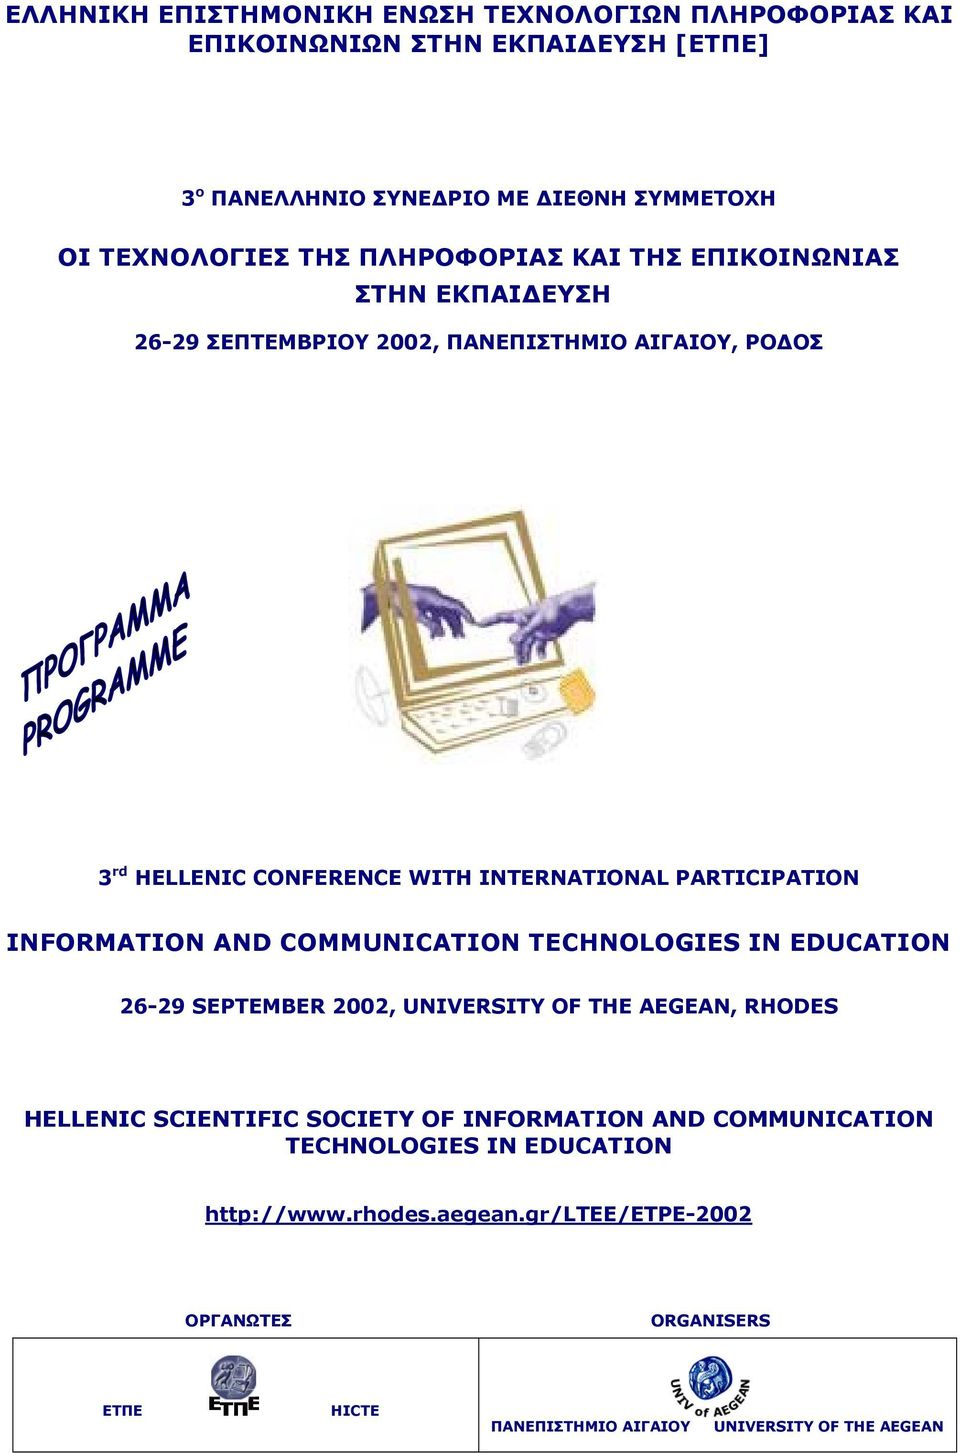 PARTICIPATION INFORMATION AND COMMUNICATION TECHNOLOGIES IN EDUCATION 26-29 SEPTEMBER 2002, UNIVERSITY OF THE AEGEAN, RHODES HELLENIC SCIENTIFIC SOCIETY OF